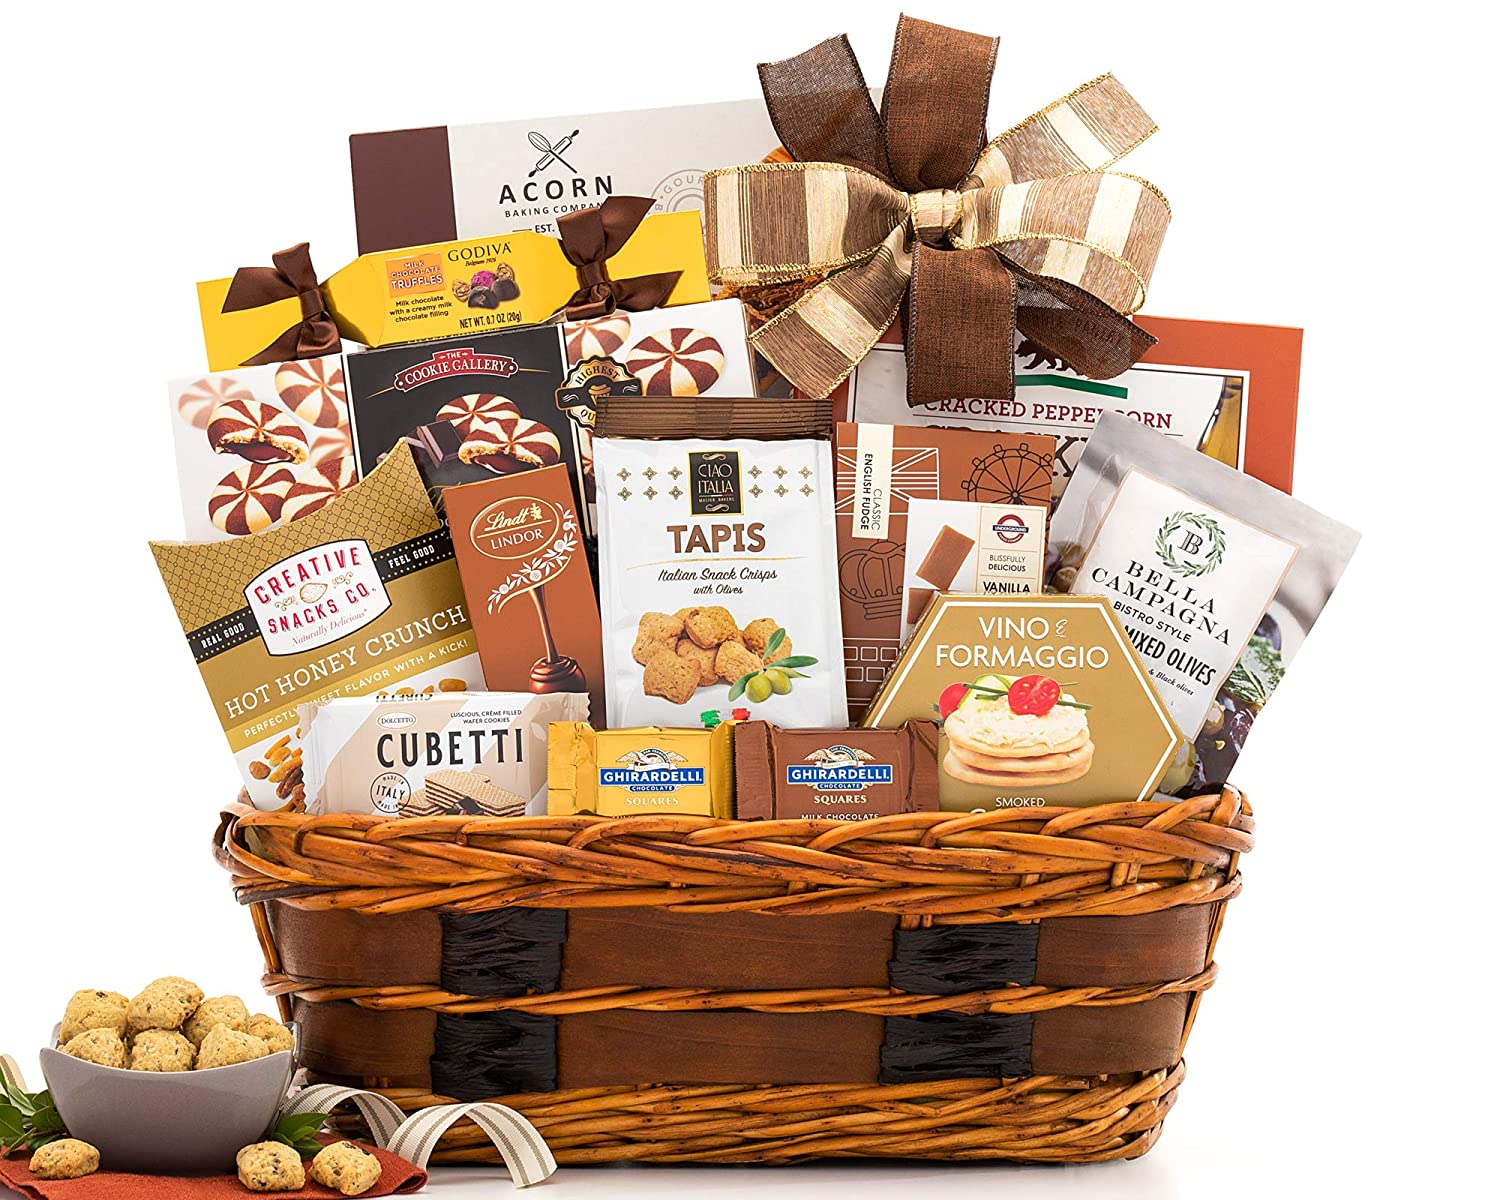 This is an image of a brown gift basket full of sweets.